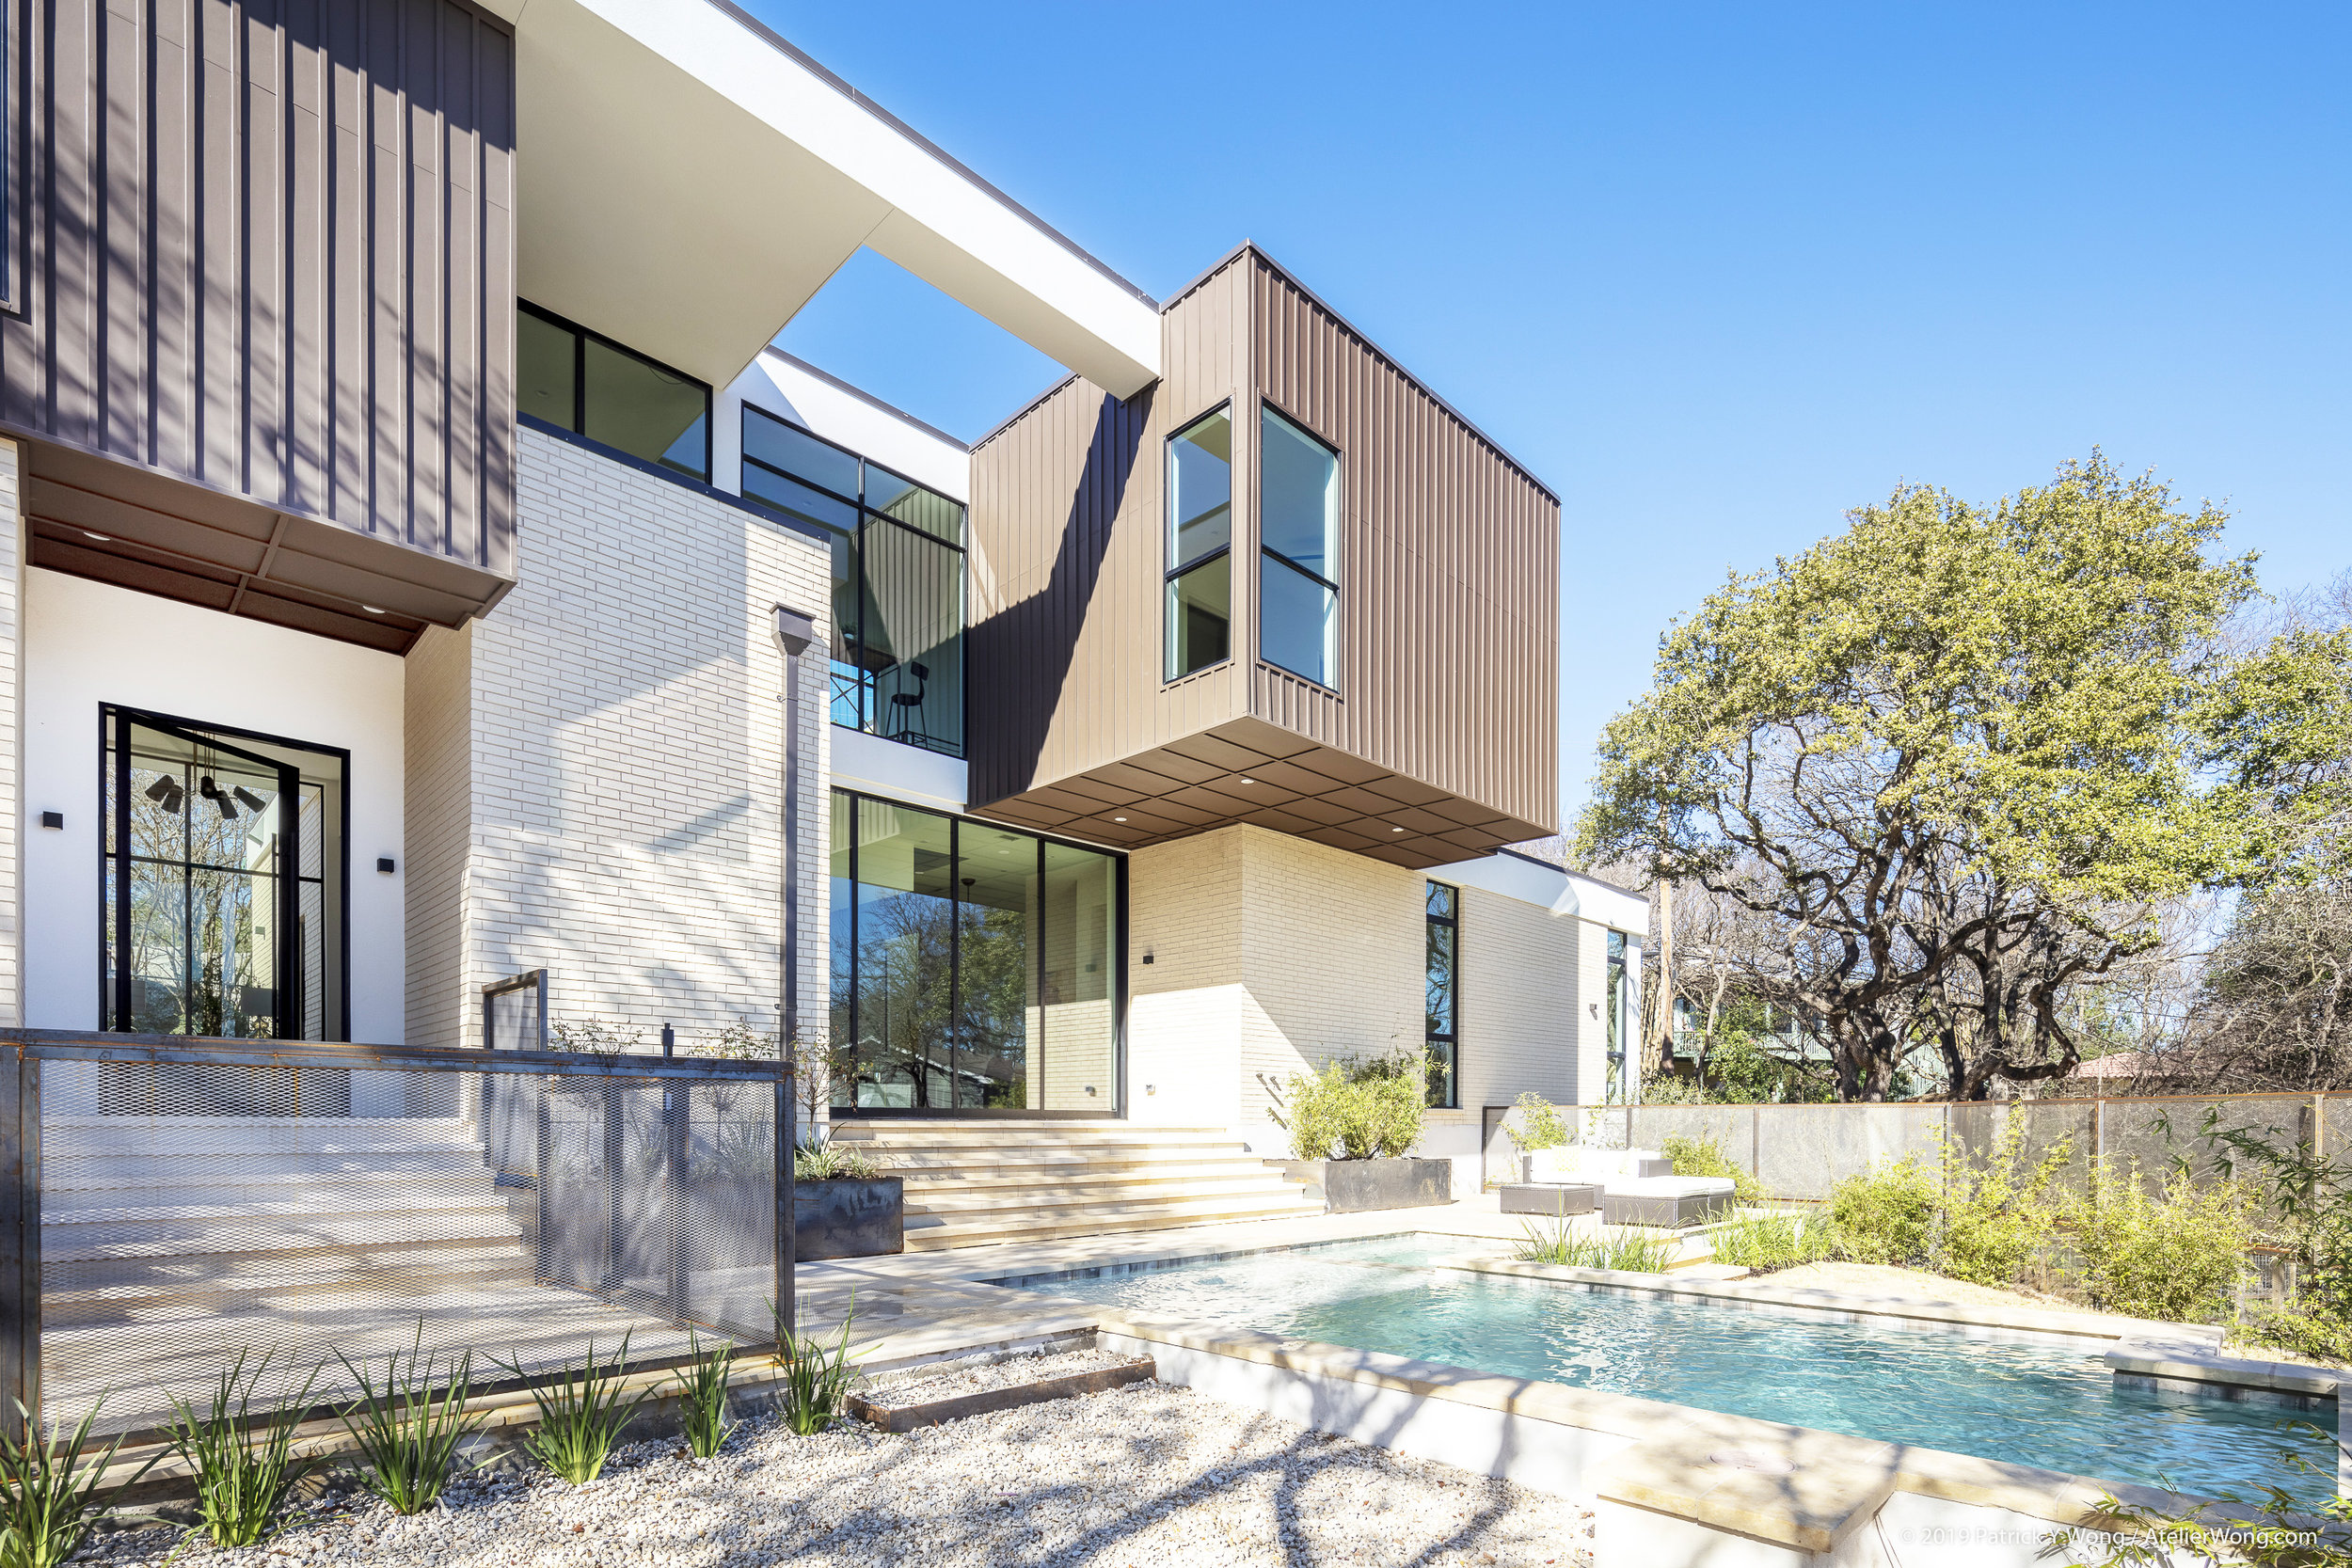 402 Westbrook | Sun 1-3p | $2,855,000 | Listed by Clayton Bullock | Hosted by Sean Mooney